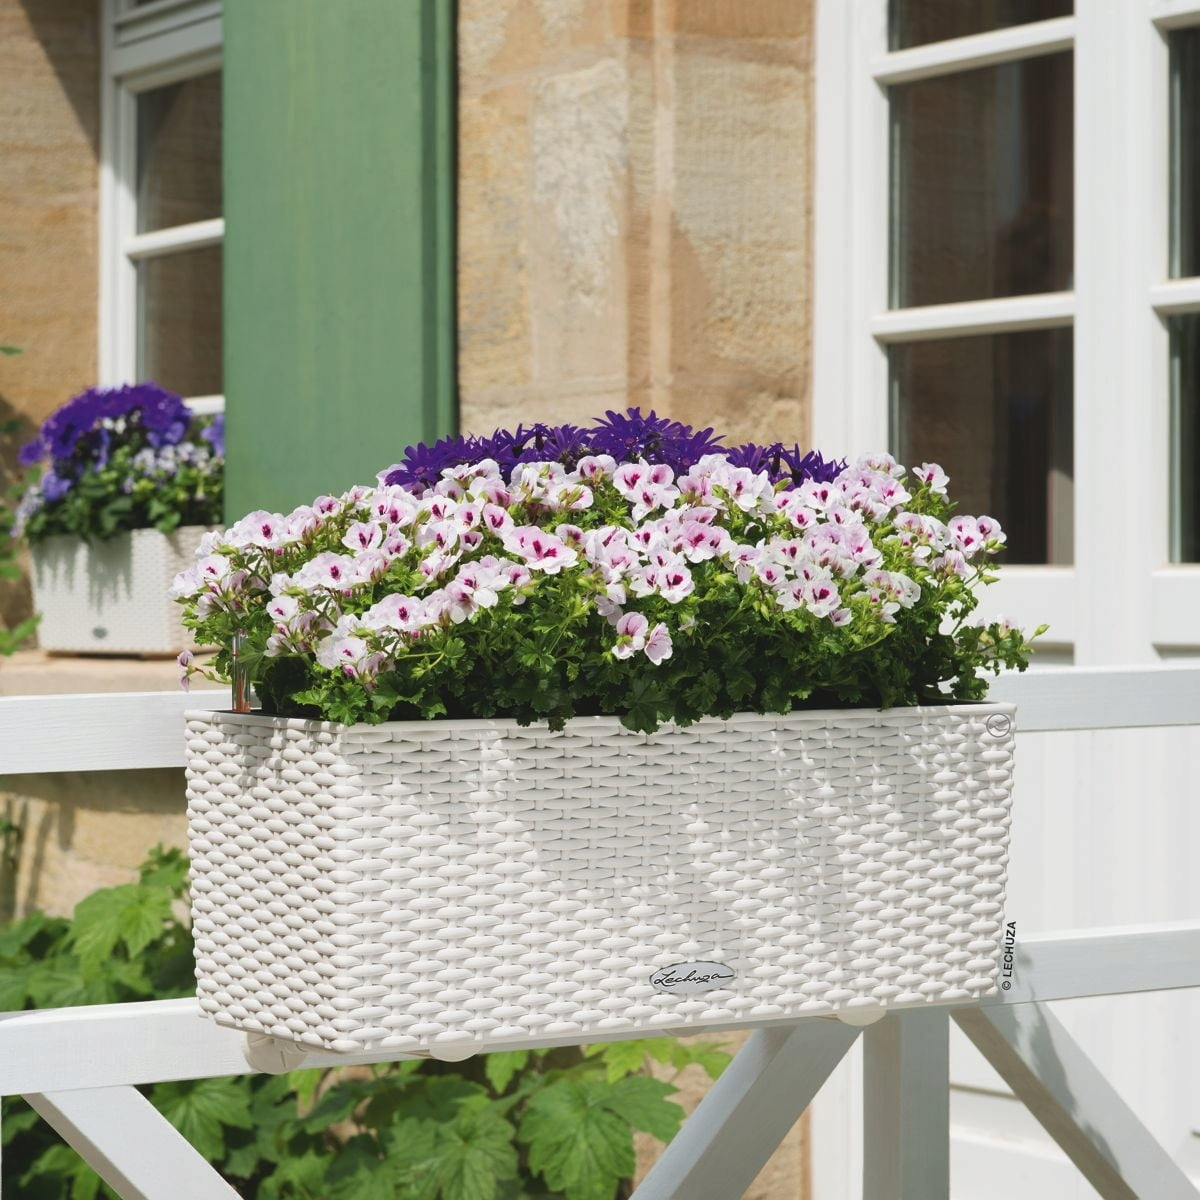 Lechuza Shop Lechuza Balconera Cottage Planter 50